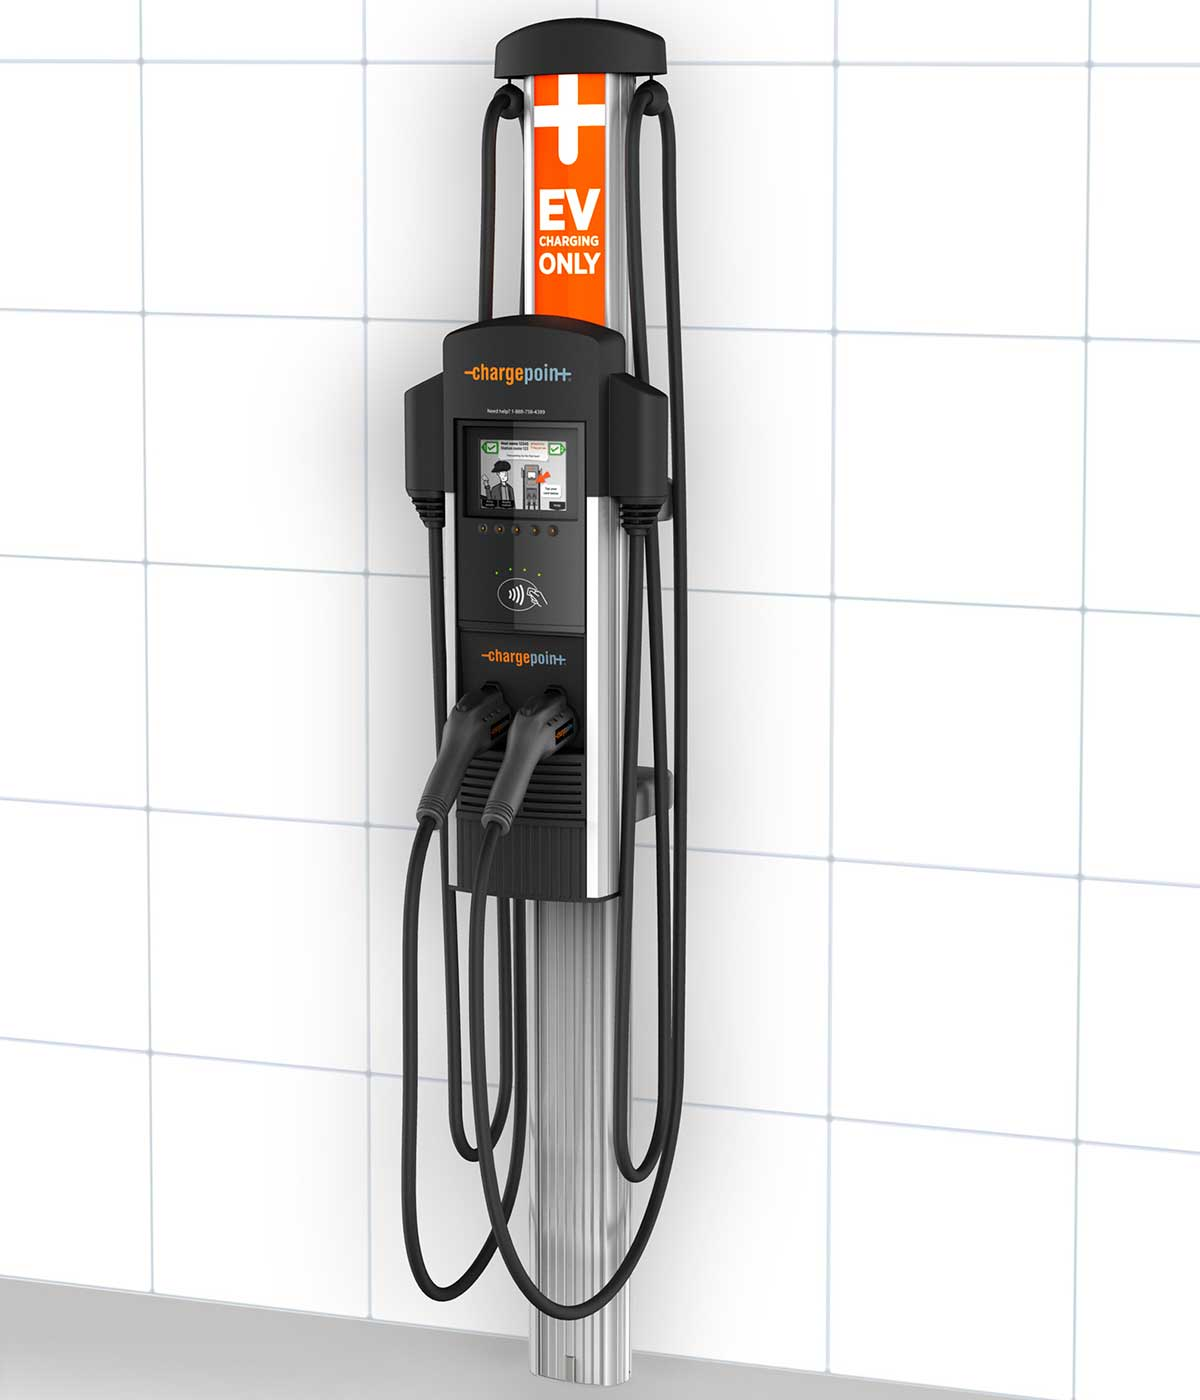 ChargePoint CT4023 GW1 Gateway Unit - electric car charging station EVSE - left side